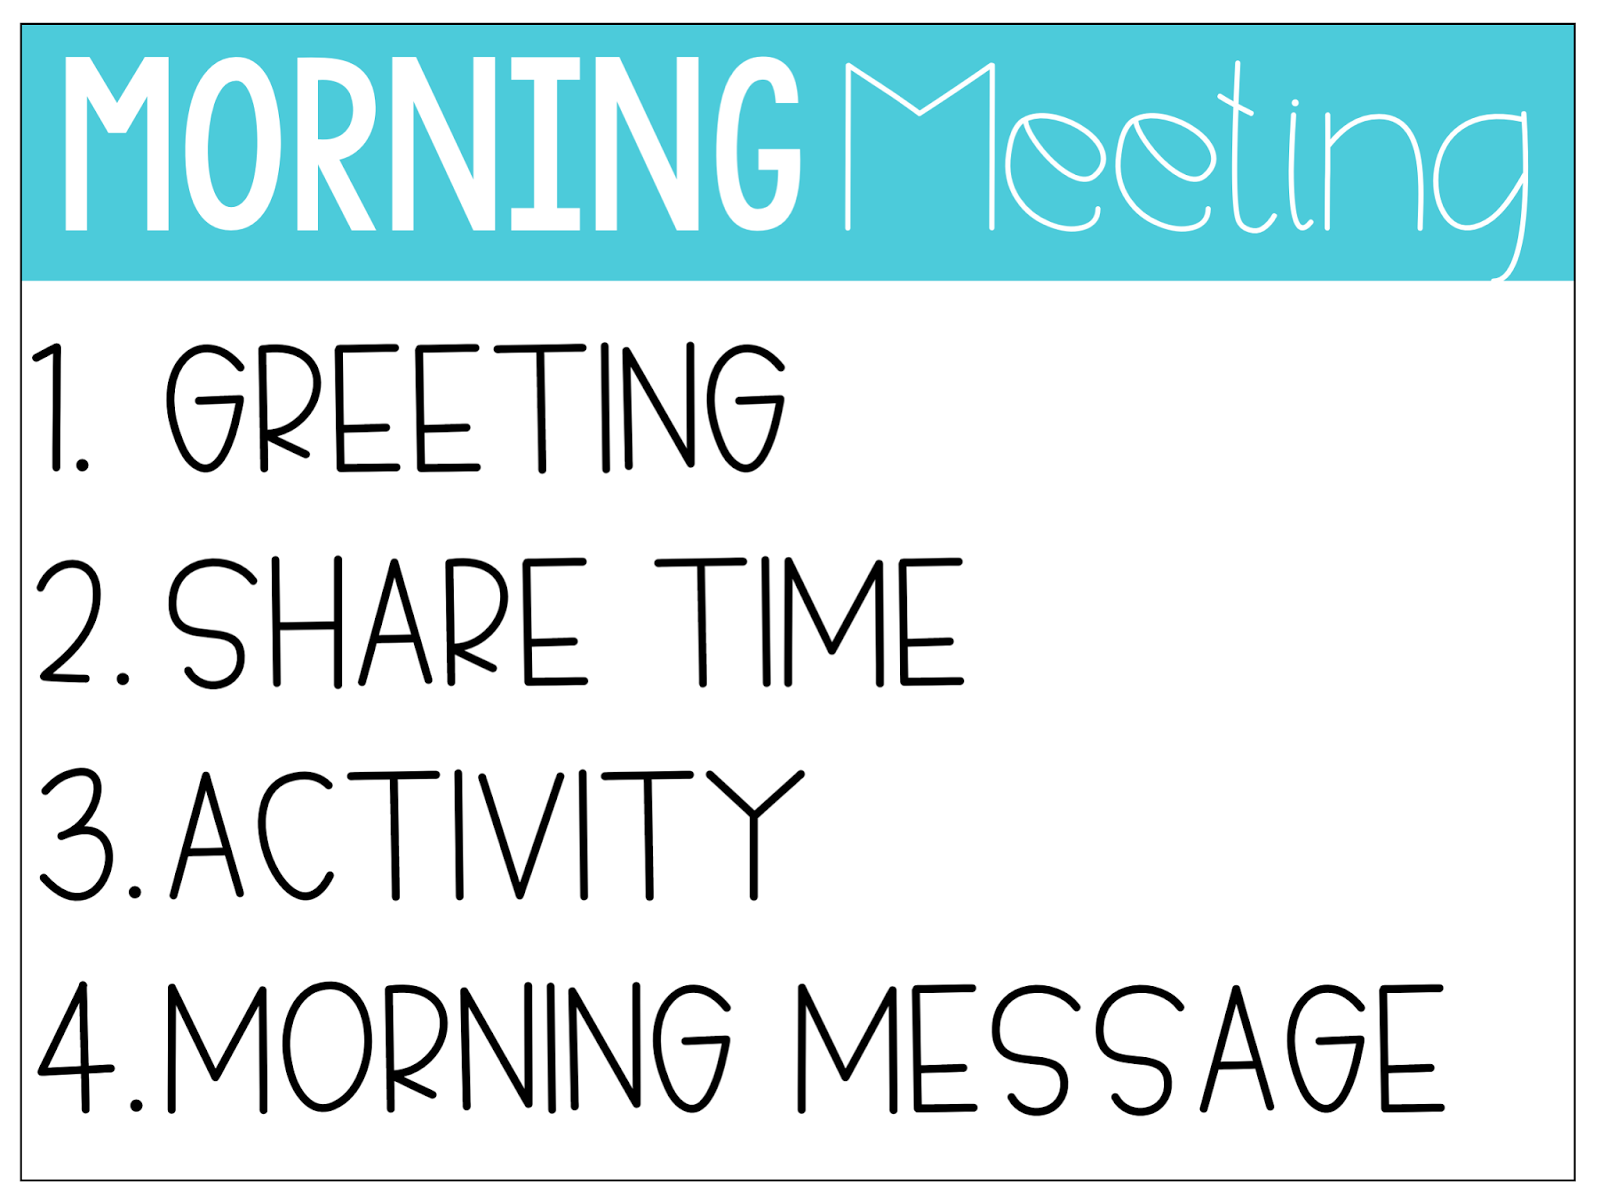 Tips for making the most of morning meeting teaching little leaders morning message i have to admit i was a skeptic of the activity part my first thought was that the activity would be all fun games and silliness m4hsunfo